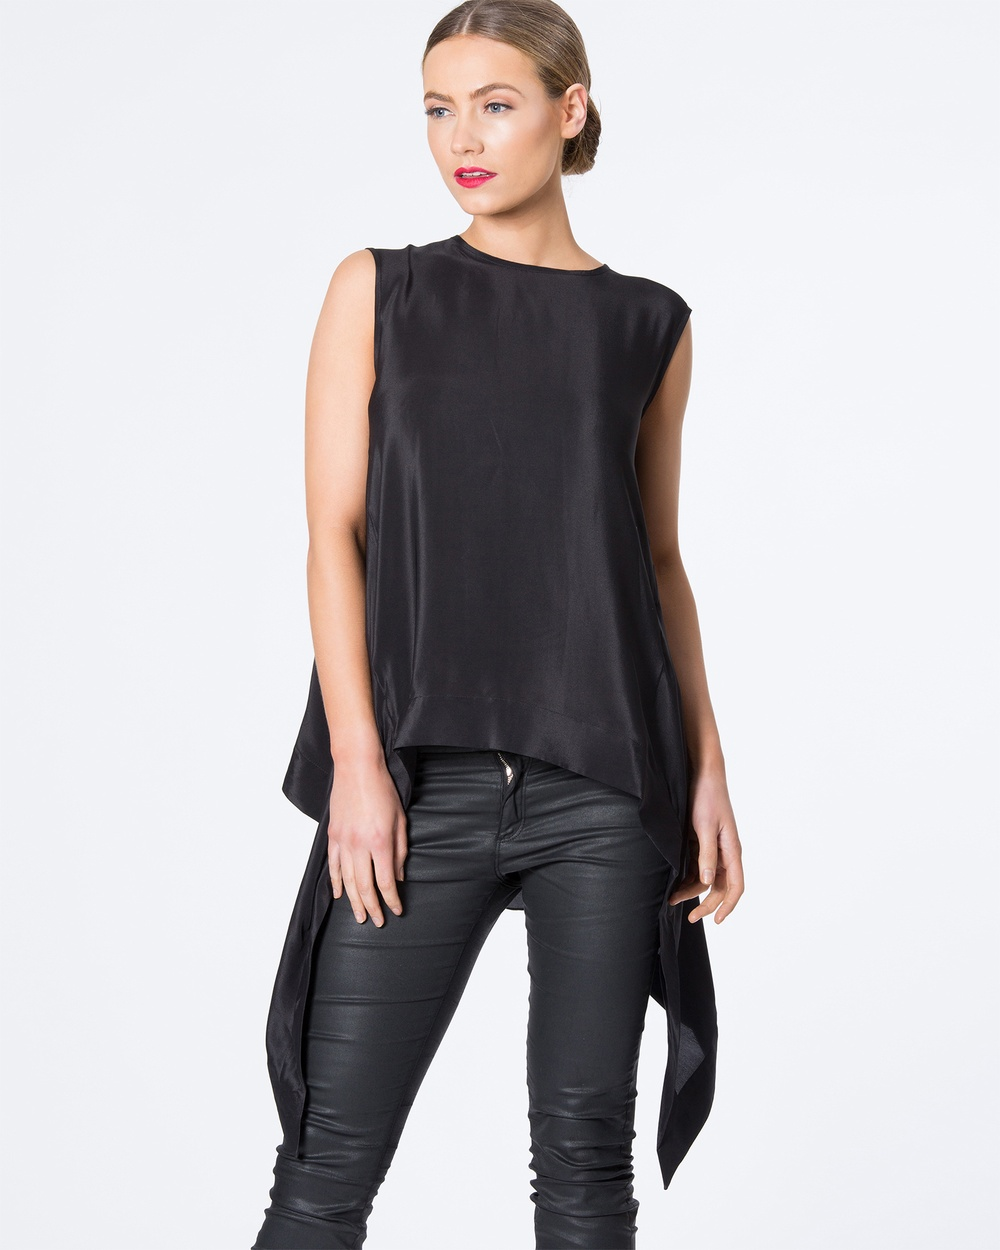 SIYONA Batwing Silk Top Tops Black Batwing Silk Top